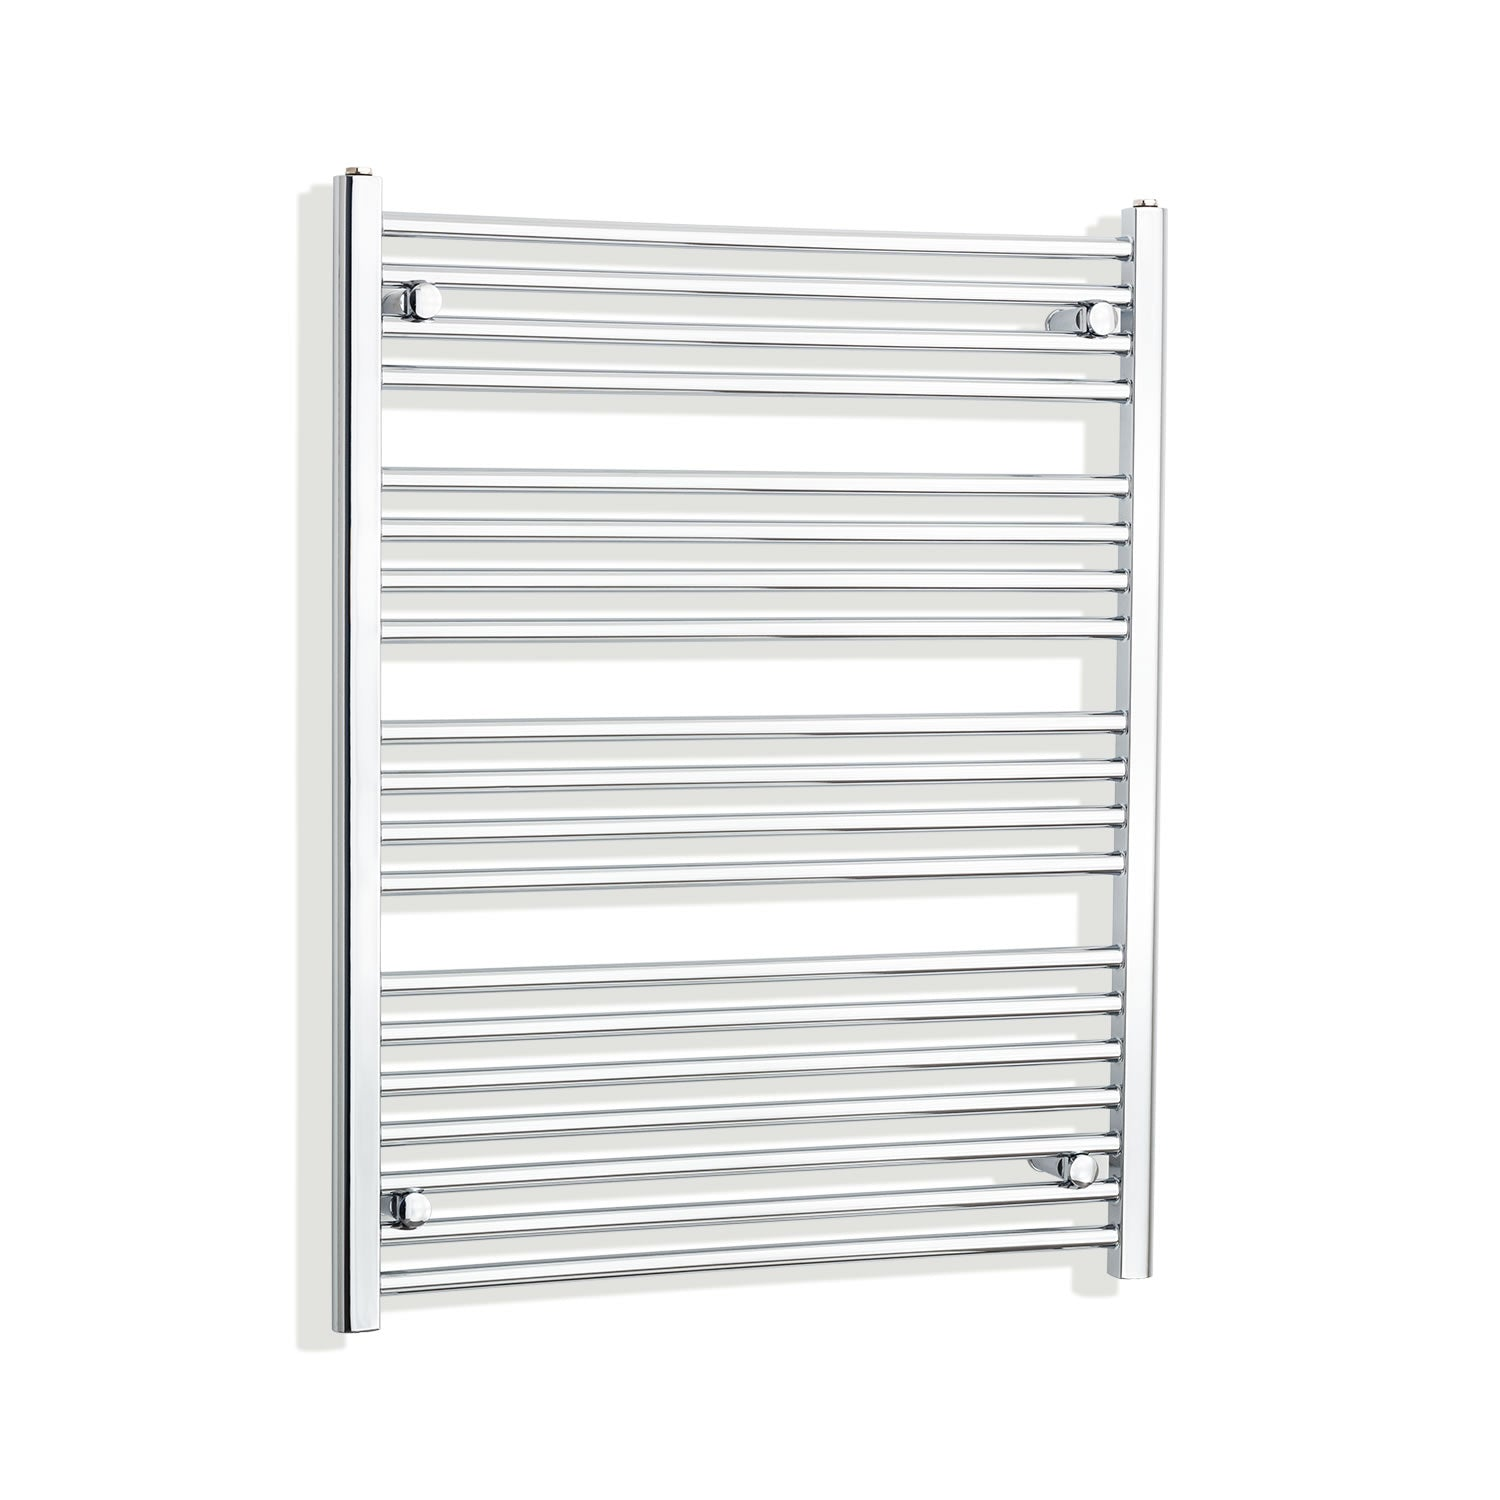 850mm Wide 1000mm High Flat Chrome Heated Towel Rail Radiator HTR,Towel Rail Only